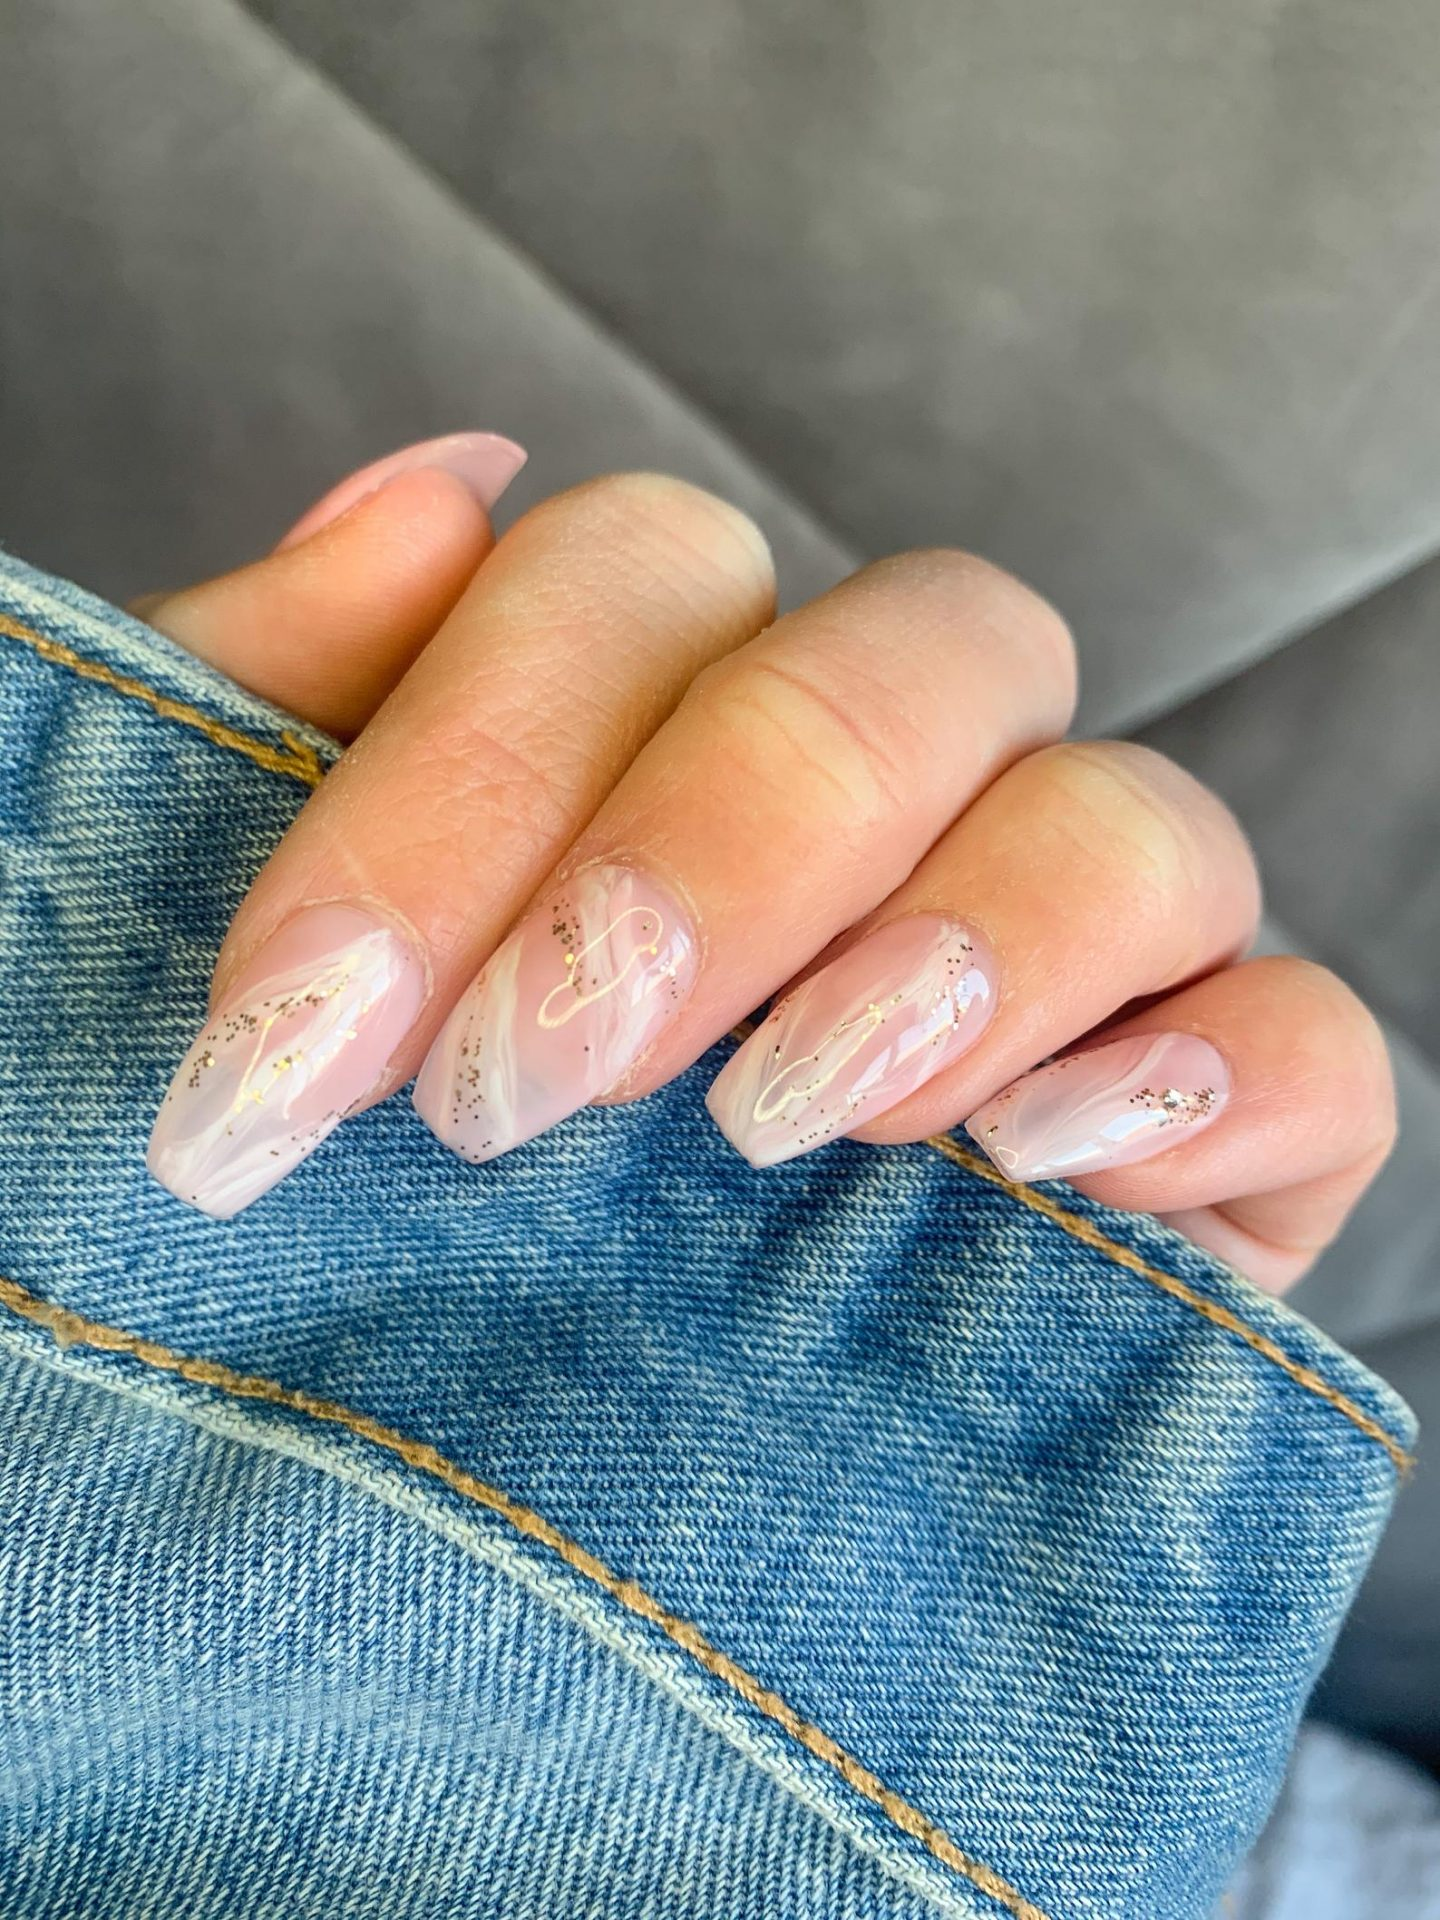 White marble nails with gold foil